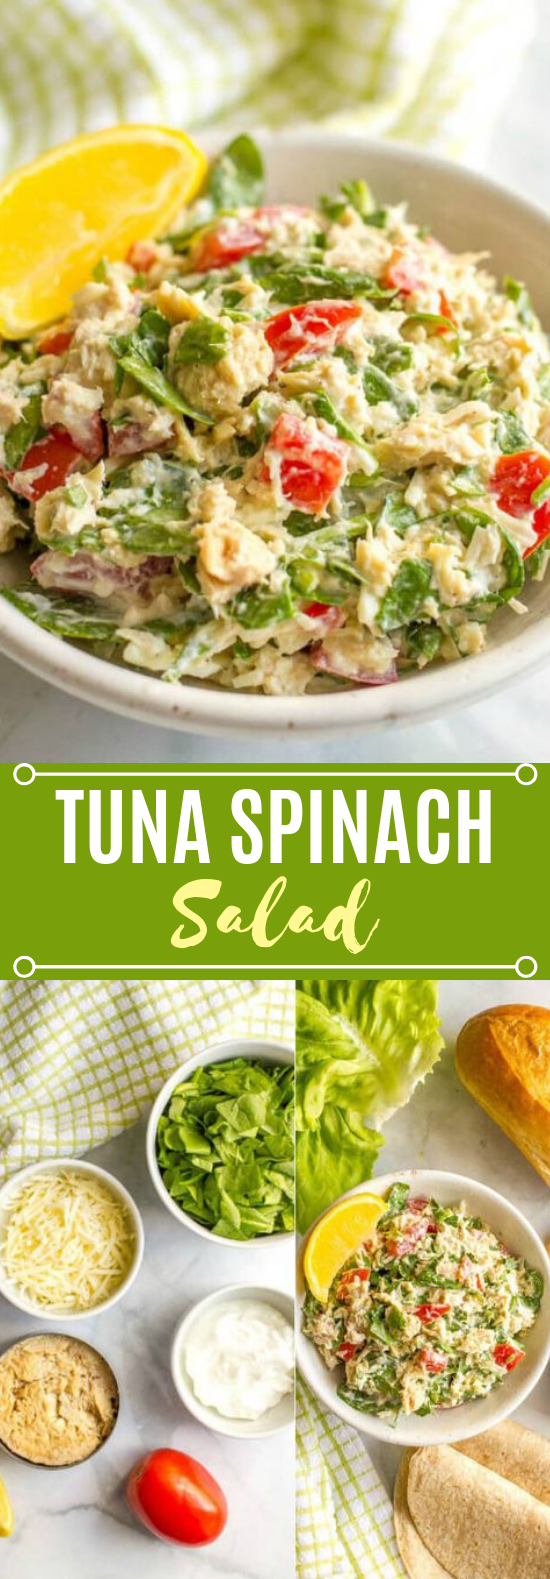 Tuna spinach salad #healthy #lowcarb